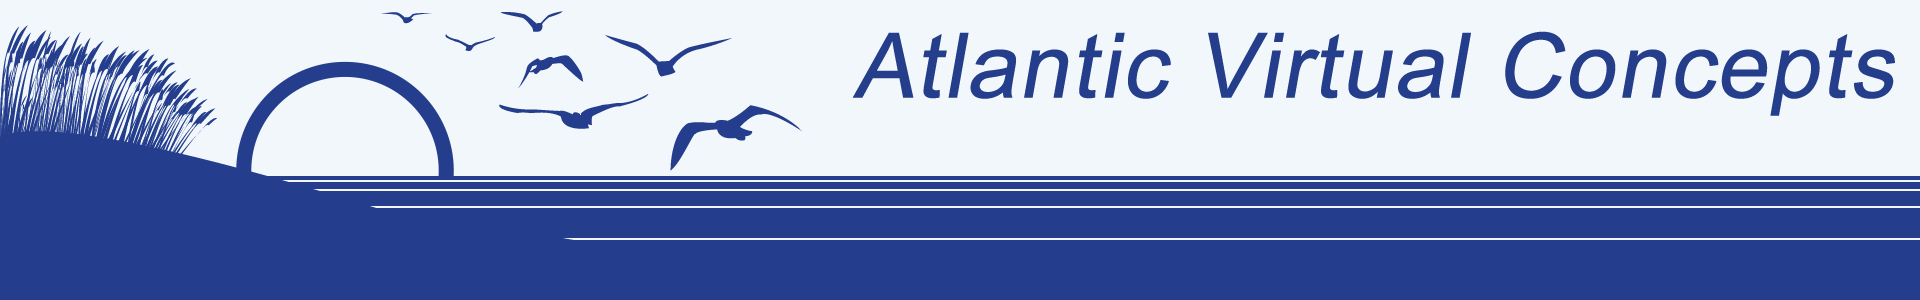 Atlantic Virtual Concepts, Inc.